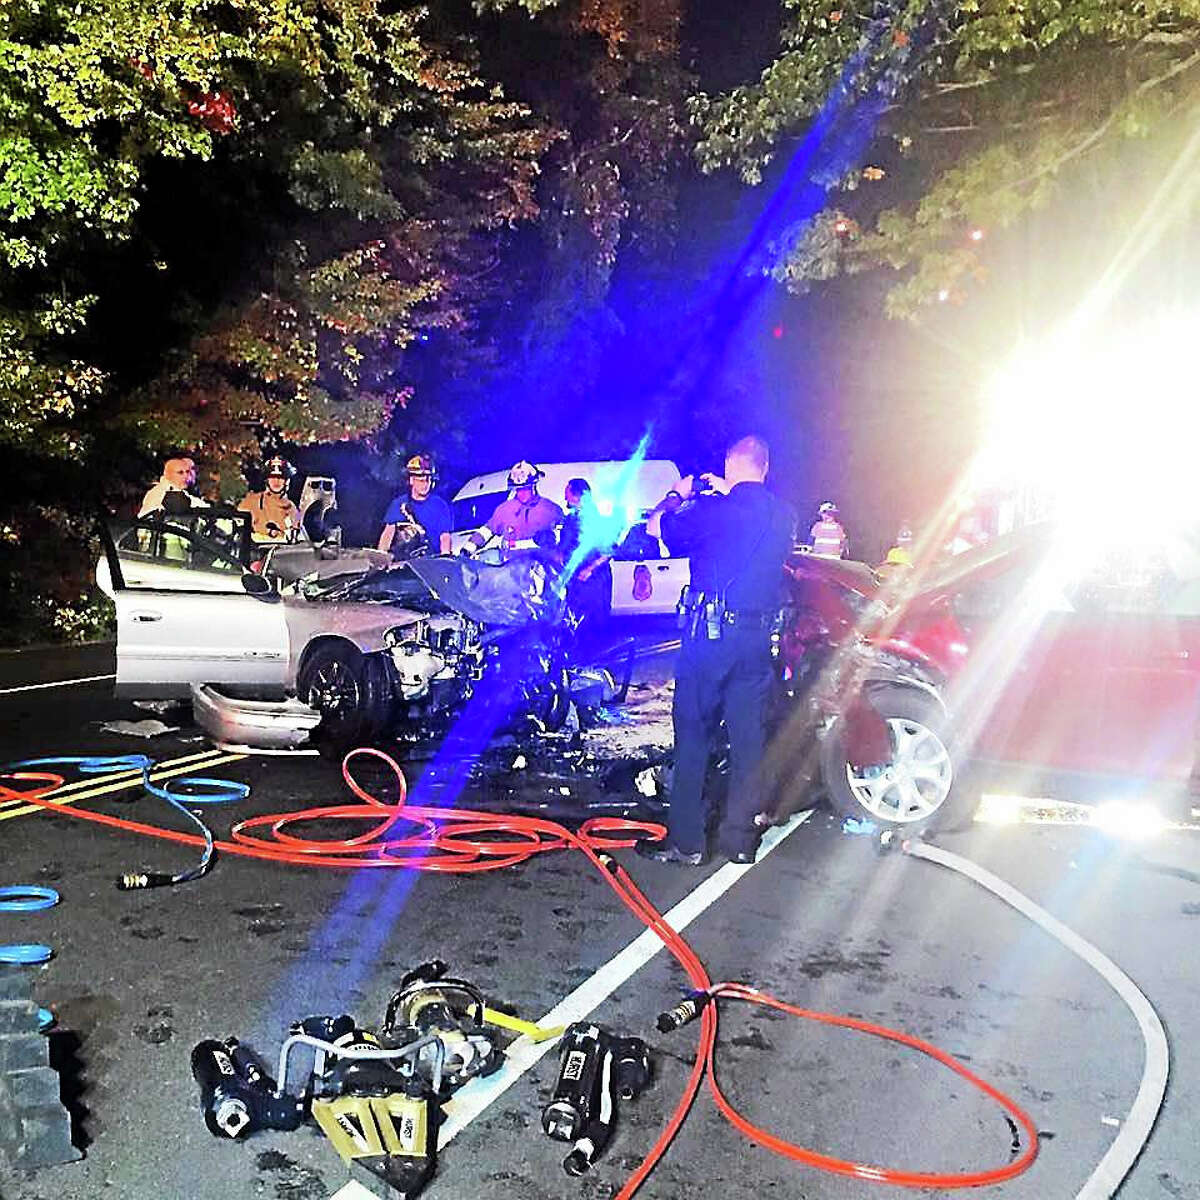 A Shelton woman died after a head-on crash Thursday night in Shelton. Her 15-month-old daughter survived the wreck with minor injuries, police said.